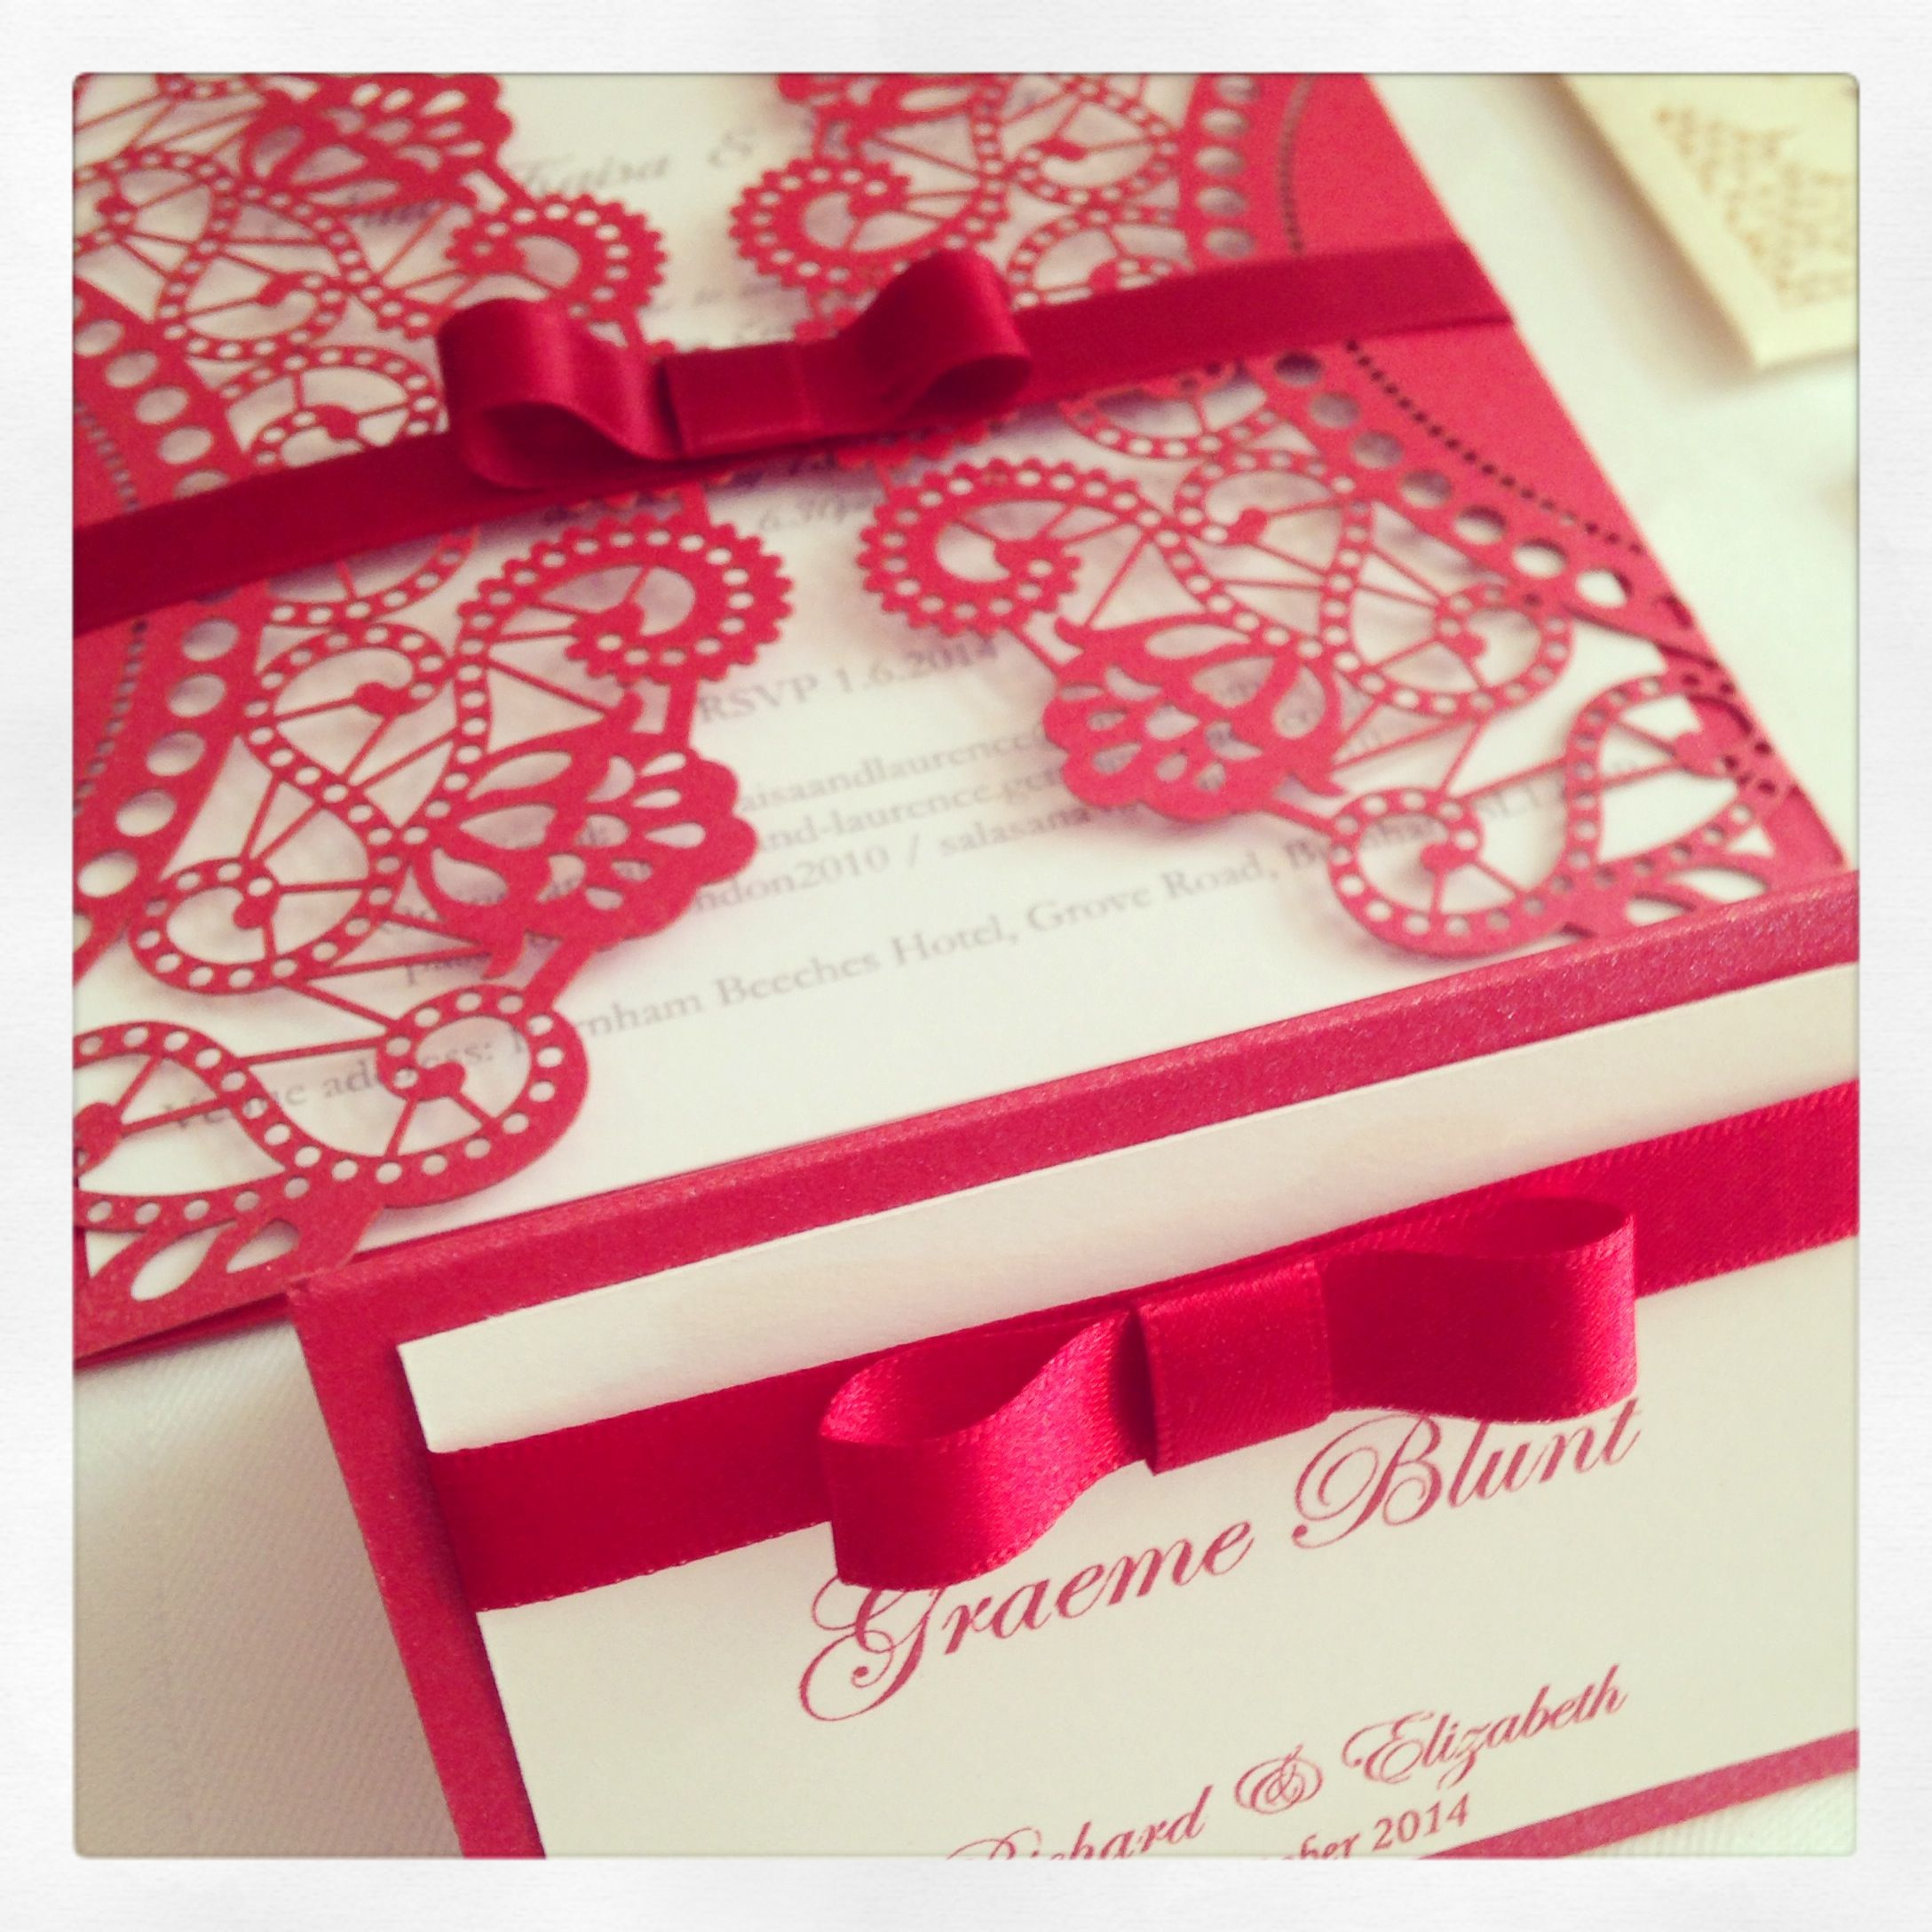 Scarlet red laser cut doily wedding invitation with co-ordinating ...